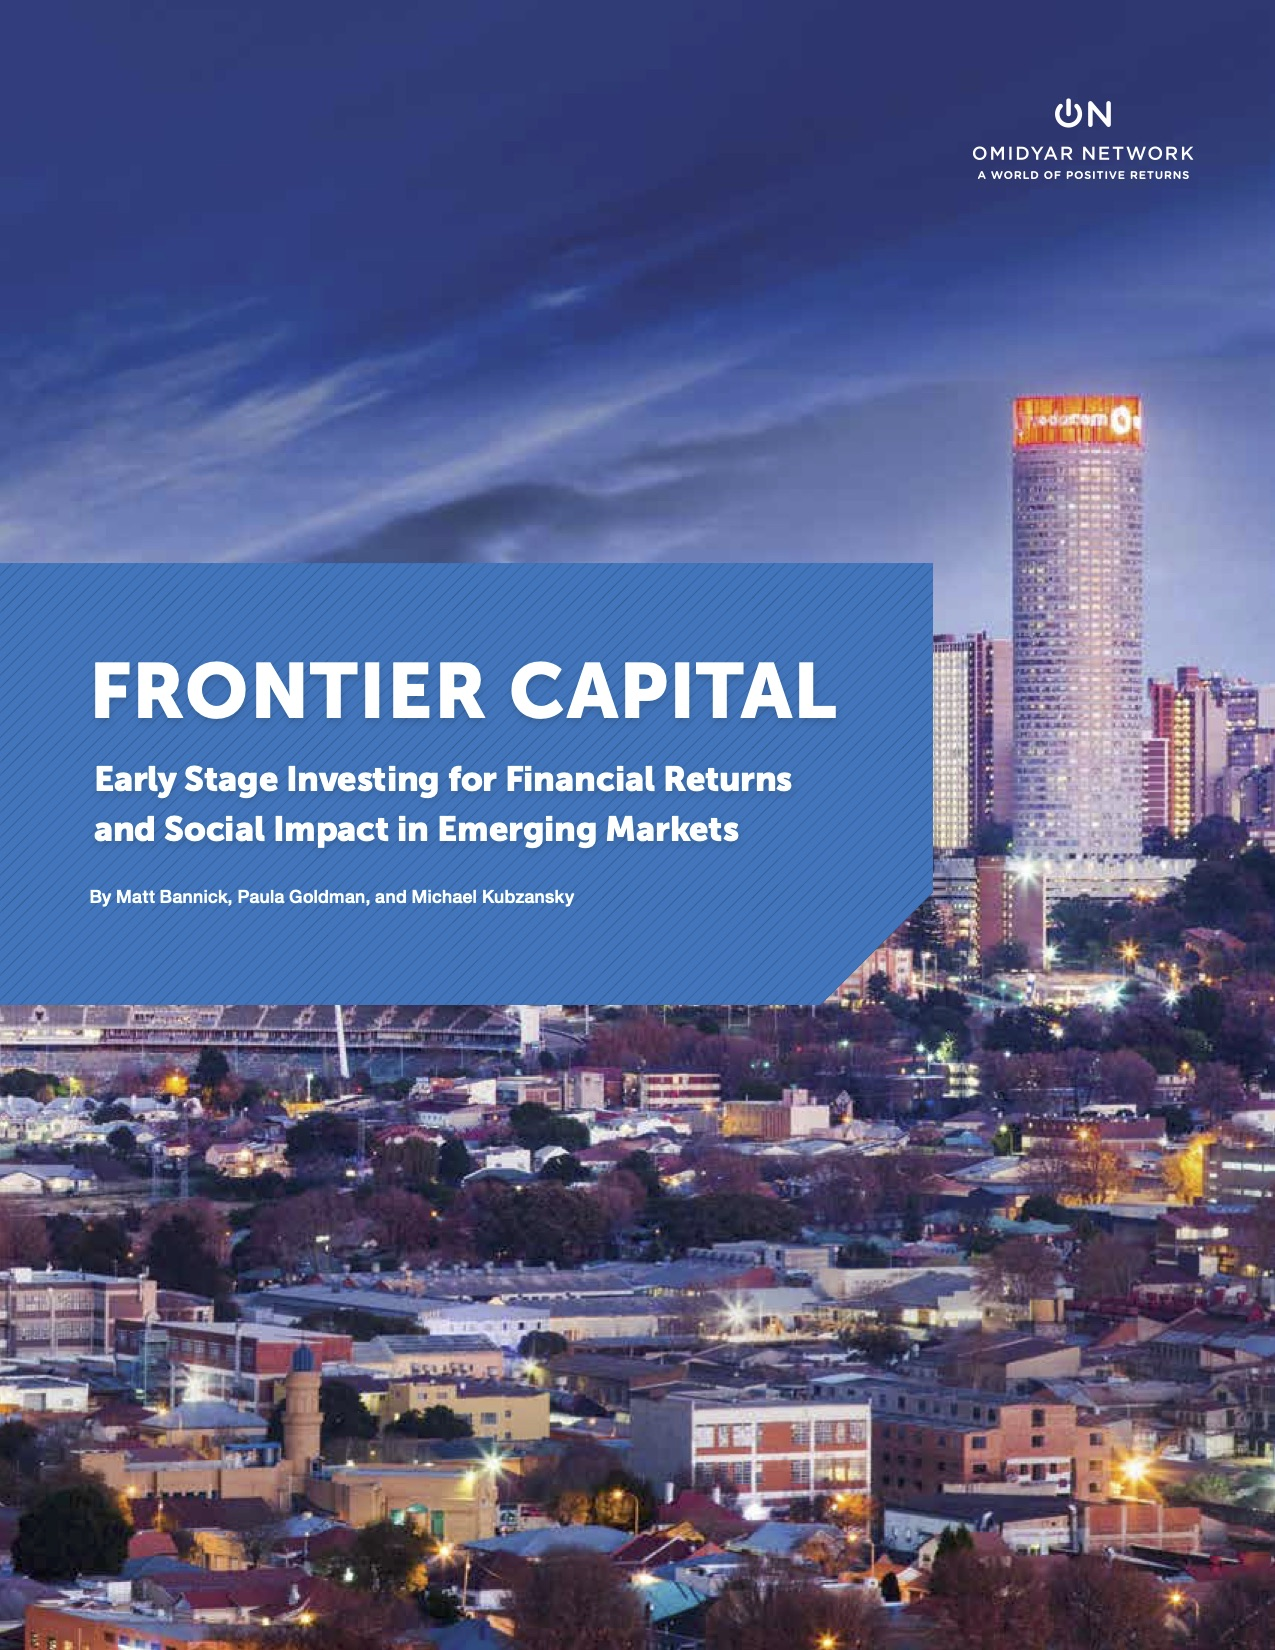 Frontier Capital by Omidyar Network